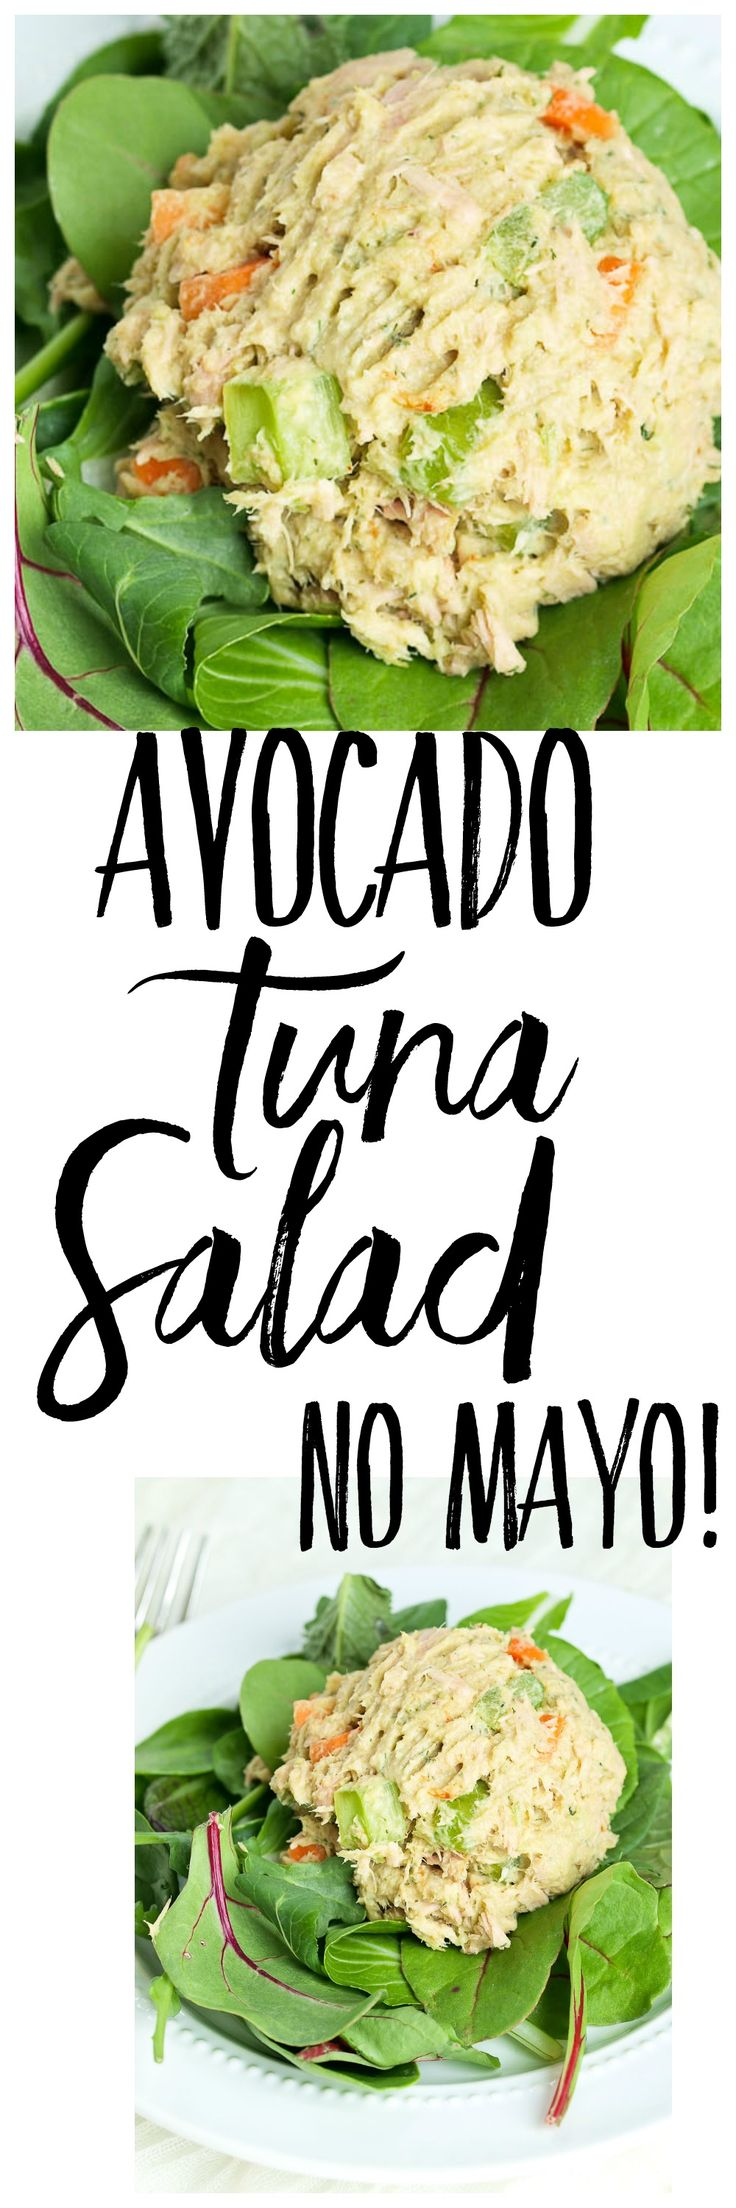 Avocado Tuna Salad recipe // high protein, low-carb